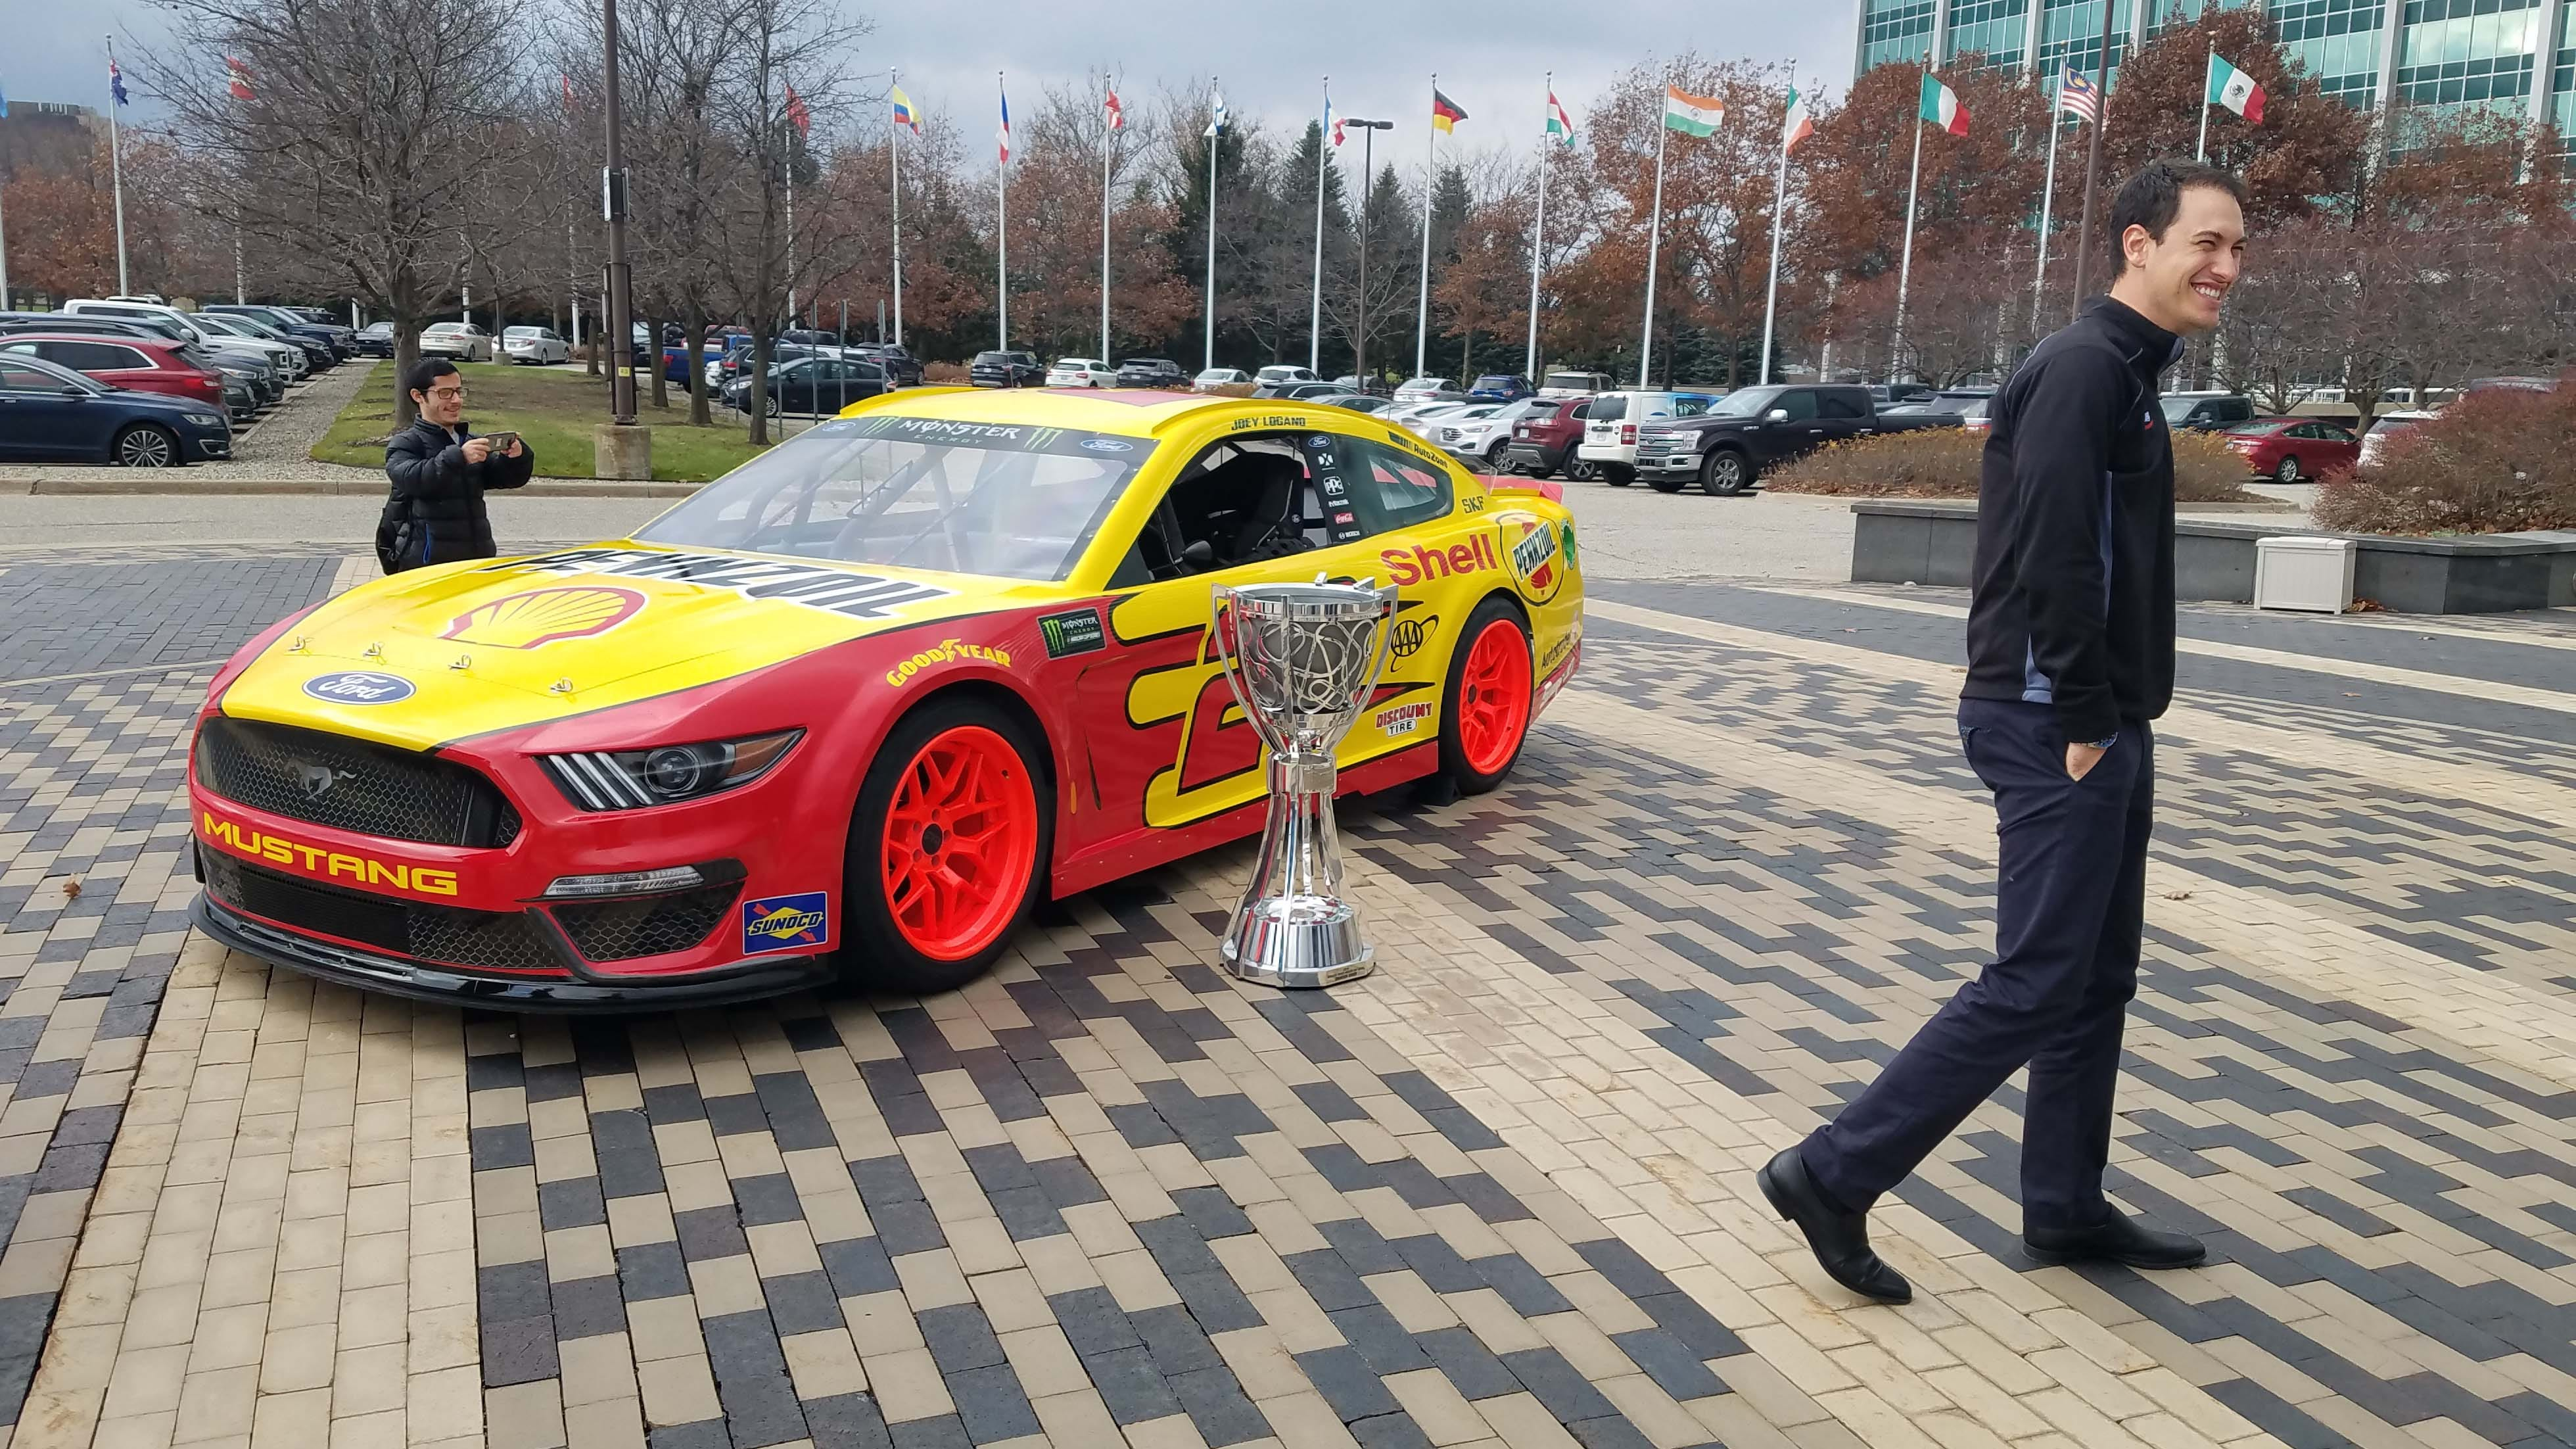 NASCAR champ Joey Logano enjoys his victory gift - a NASCAR Ford Mustang drifter - in front of Ford HQ.